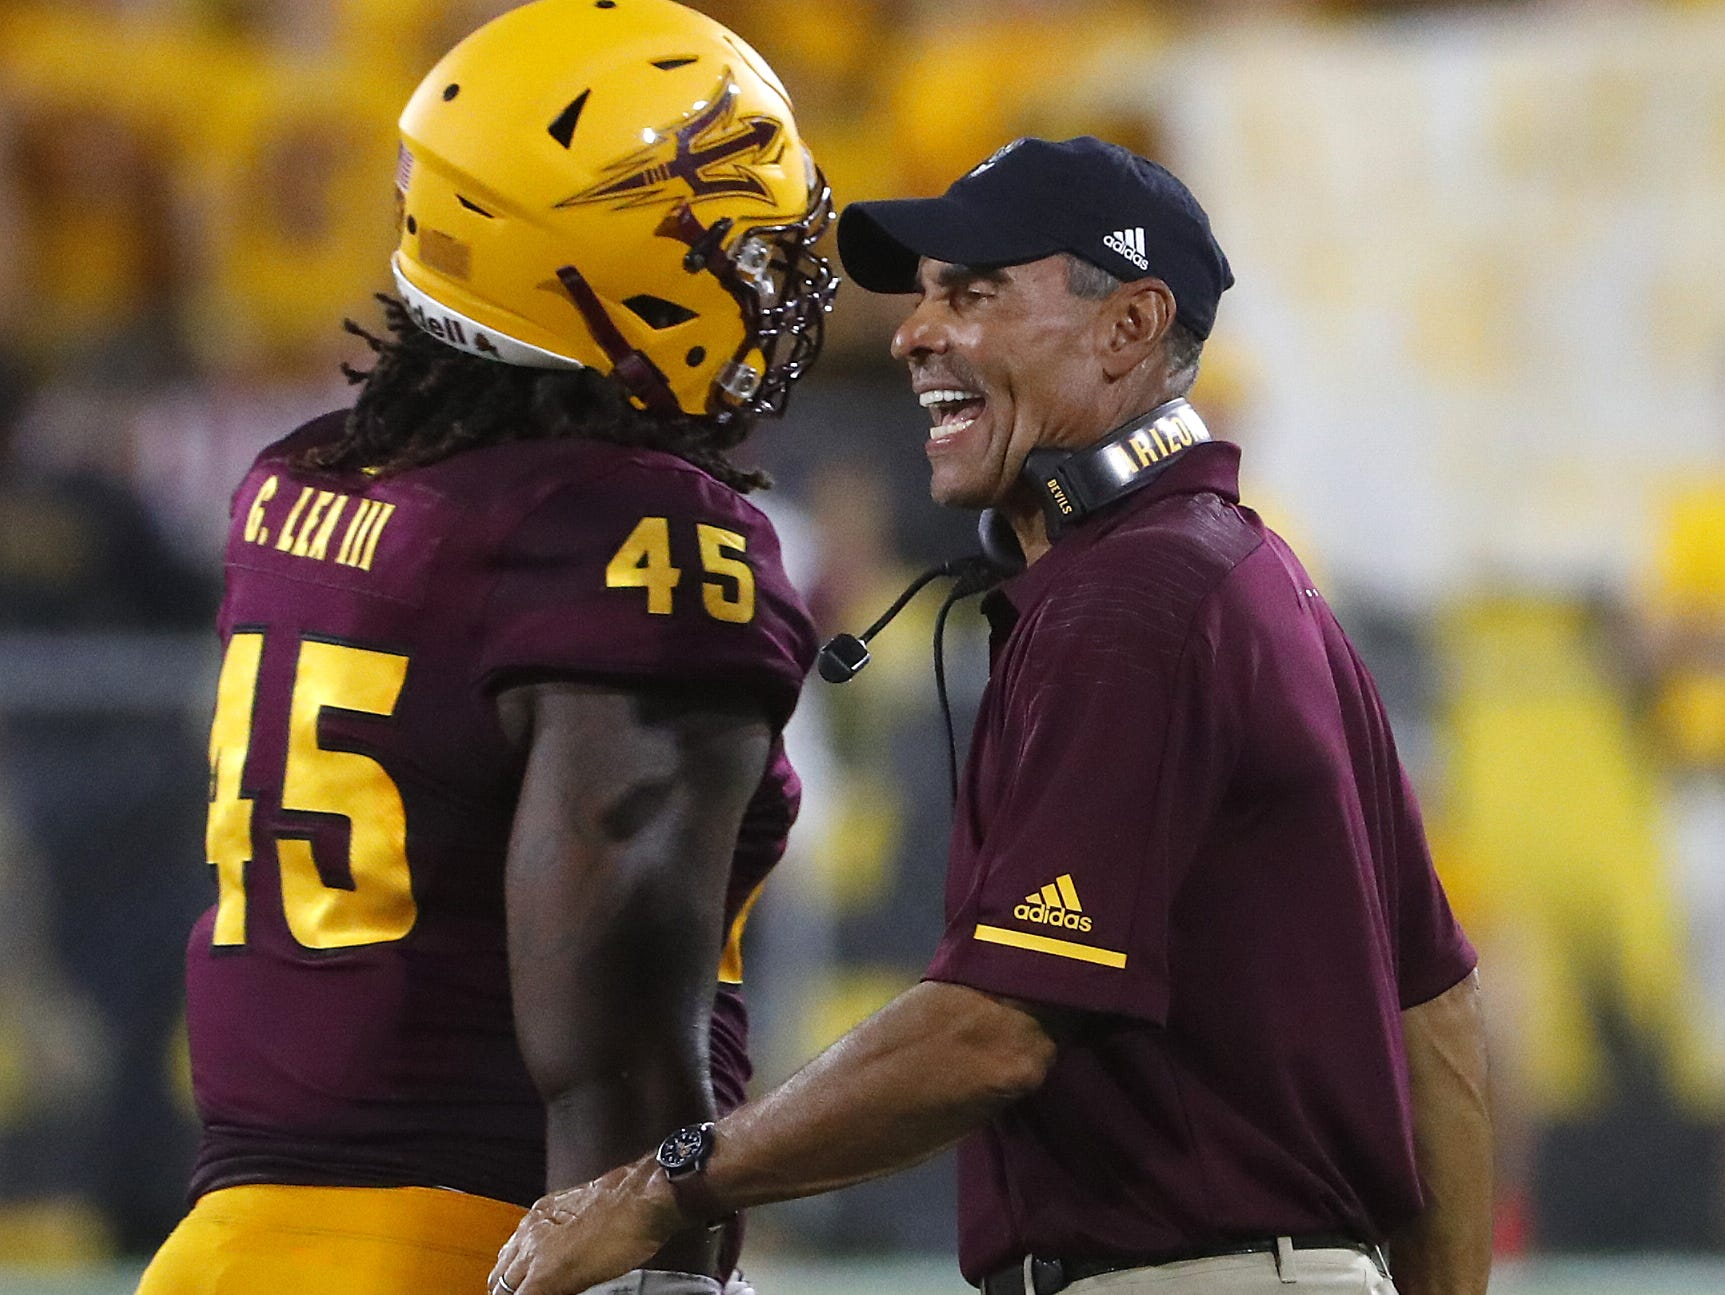 Arizona State Sun Devils head coach Herm Edwards yells to players after a targeting flag against Arizona State Sun Devils safety Jalen Harvey (43) during the first half at Sun Devil Stadium in Tempe, Ariz. on Sept. 1, 2018.